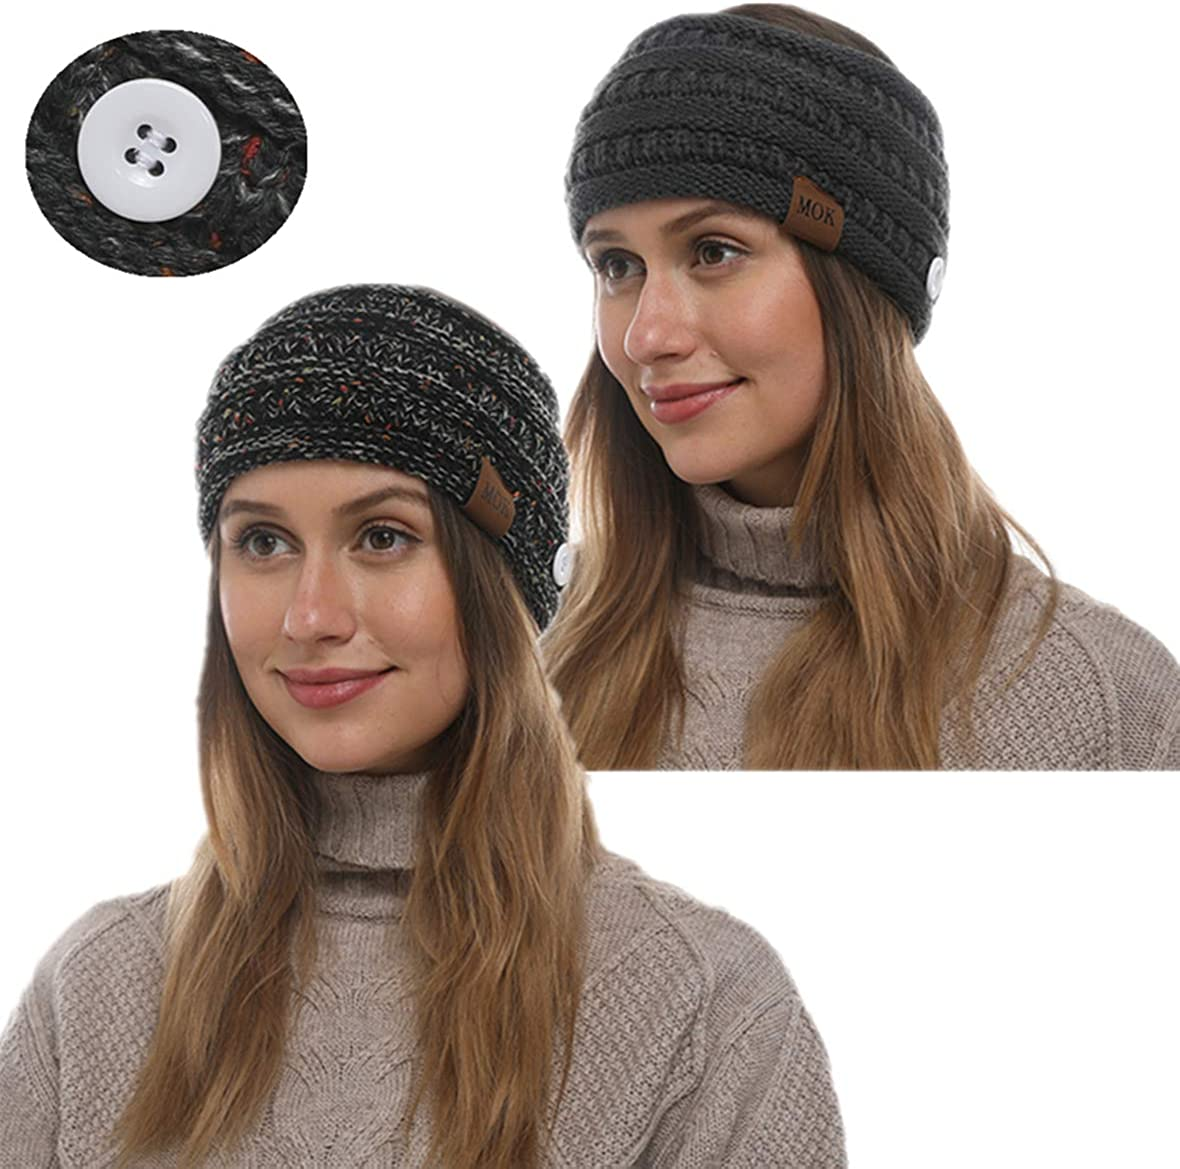 Soft Stretch Winter Warm Cable Knit Fuzzy Lined Ear Warmer Headband With button Or Mouth Cover For Girls Women